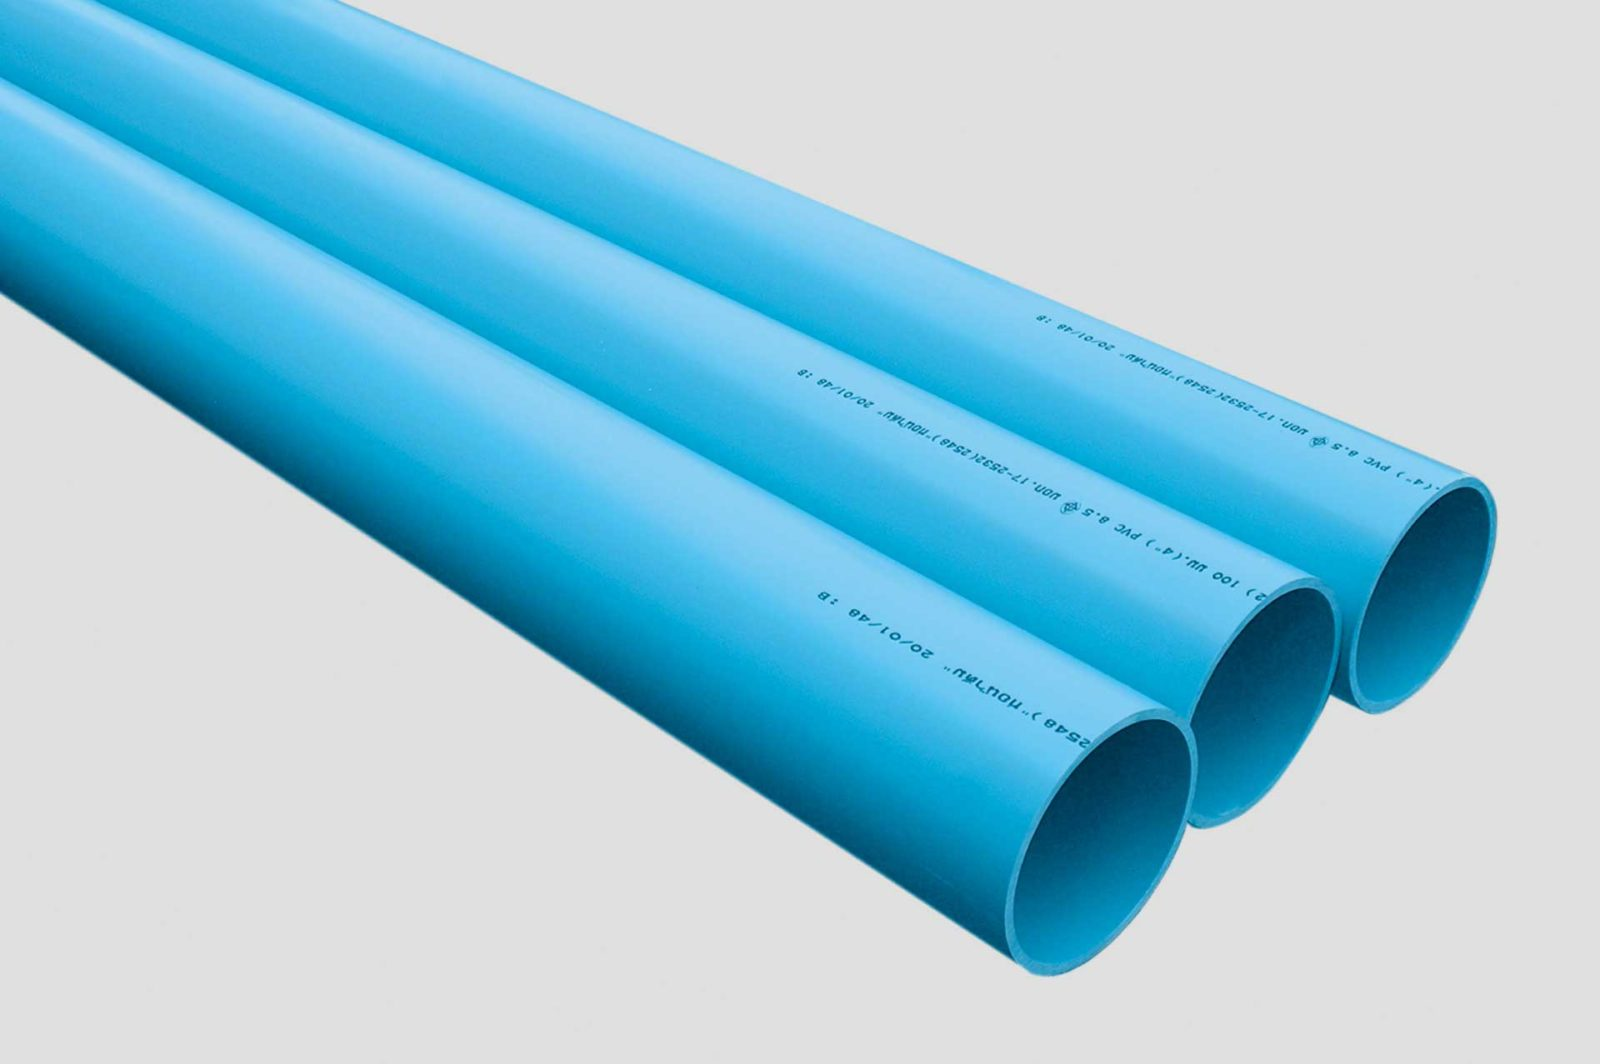 BLUE uPVC Pipe and Fitting – TVT 2002